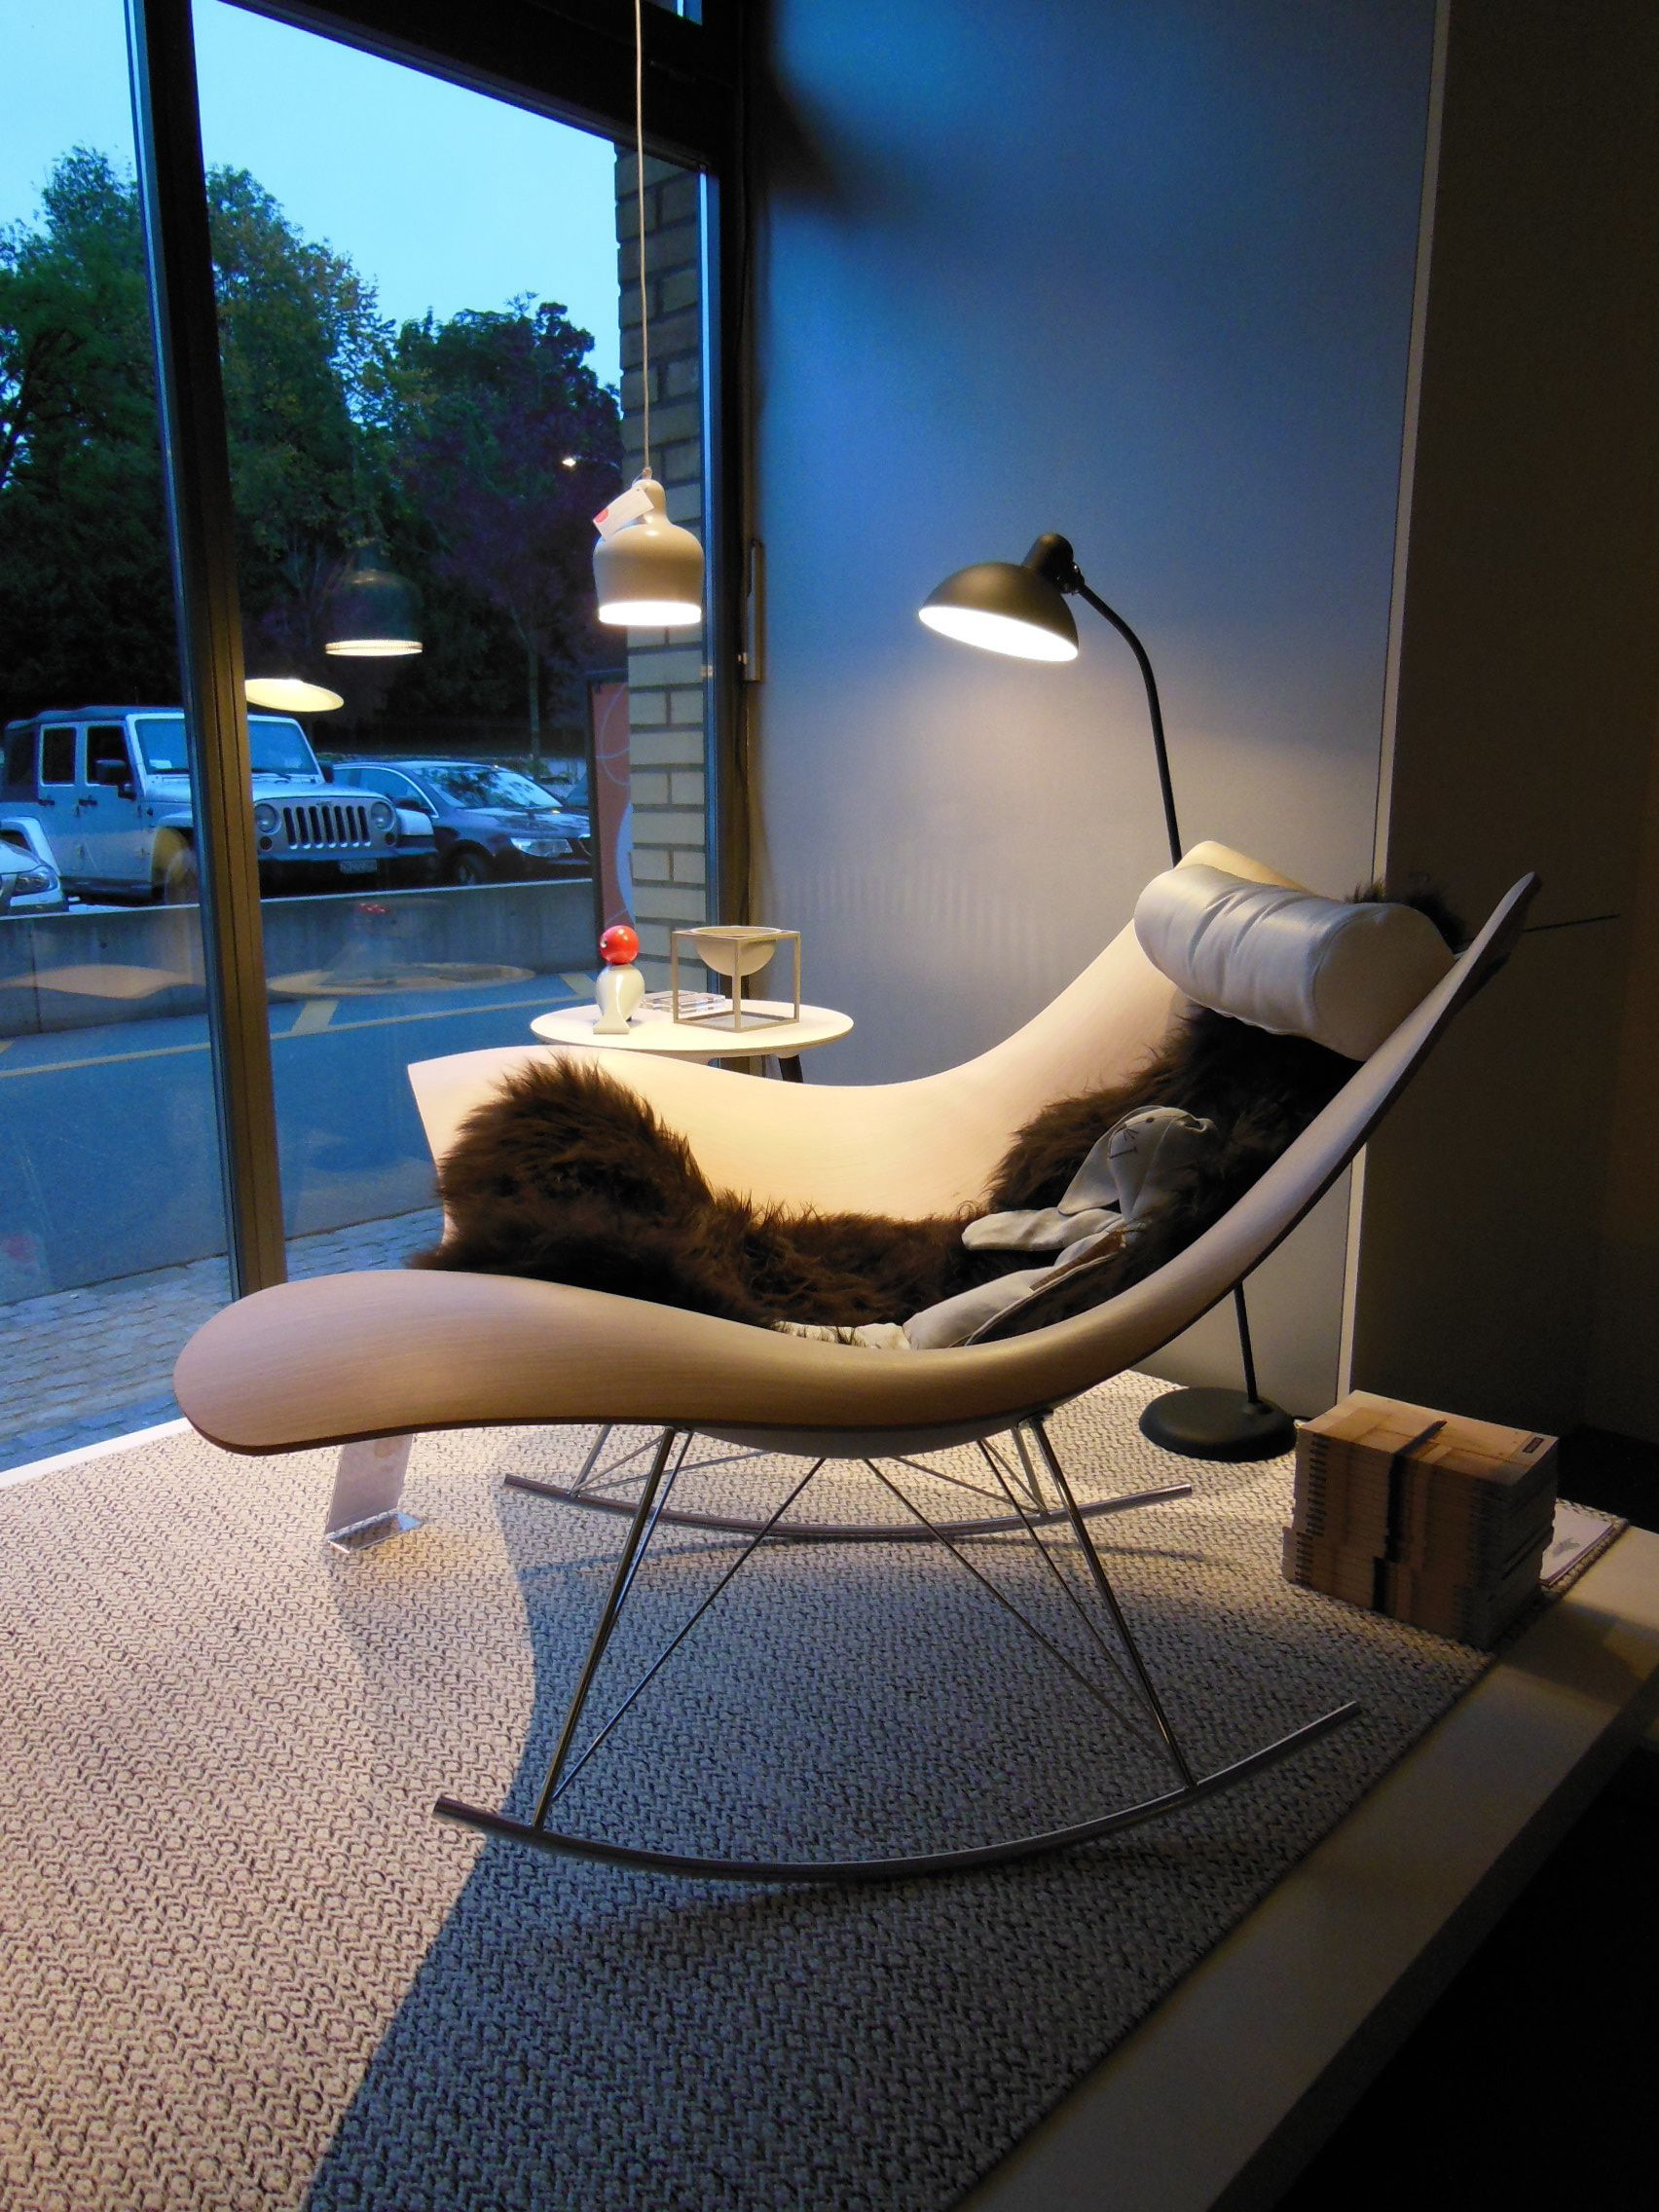 Stingray rocking chair by Thomas Pedersen from Fredericia Furniture, Kaiser idell floor lamp by Christian Dell from Fritz Hansen and Ingrid rug by Gunilla Lagerhem Ullberg from Kasthall